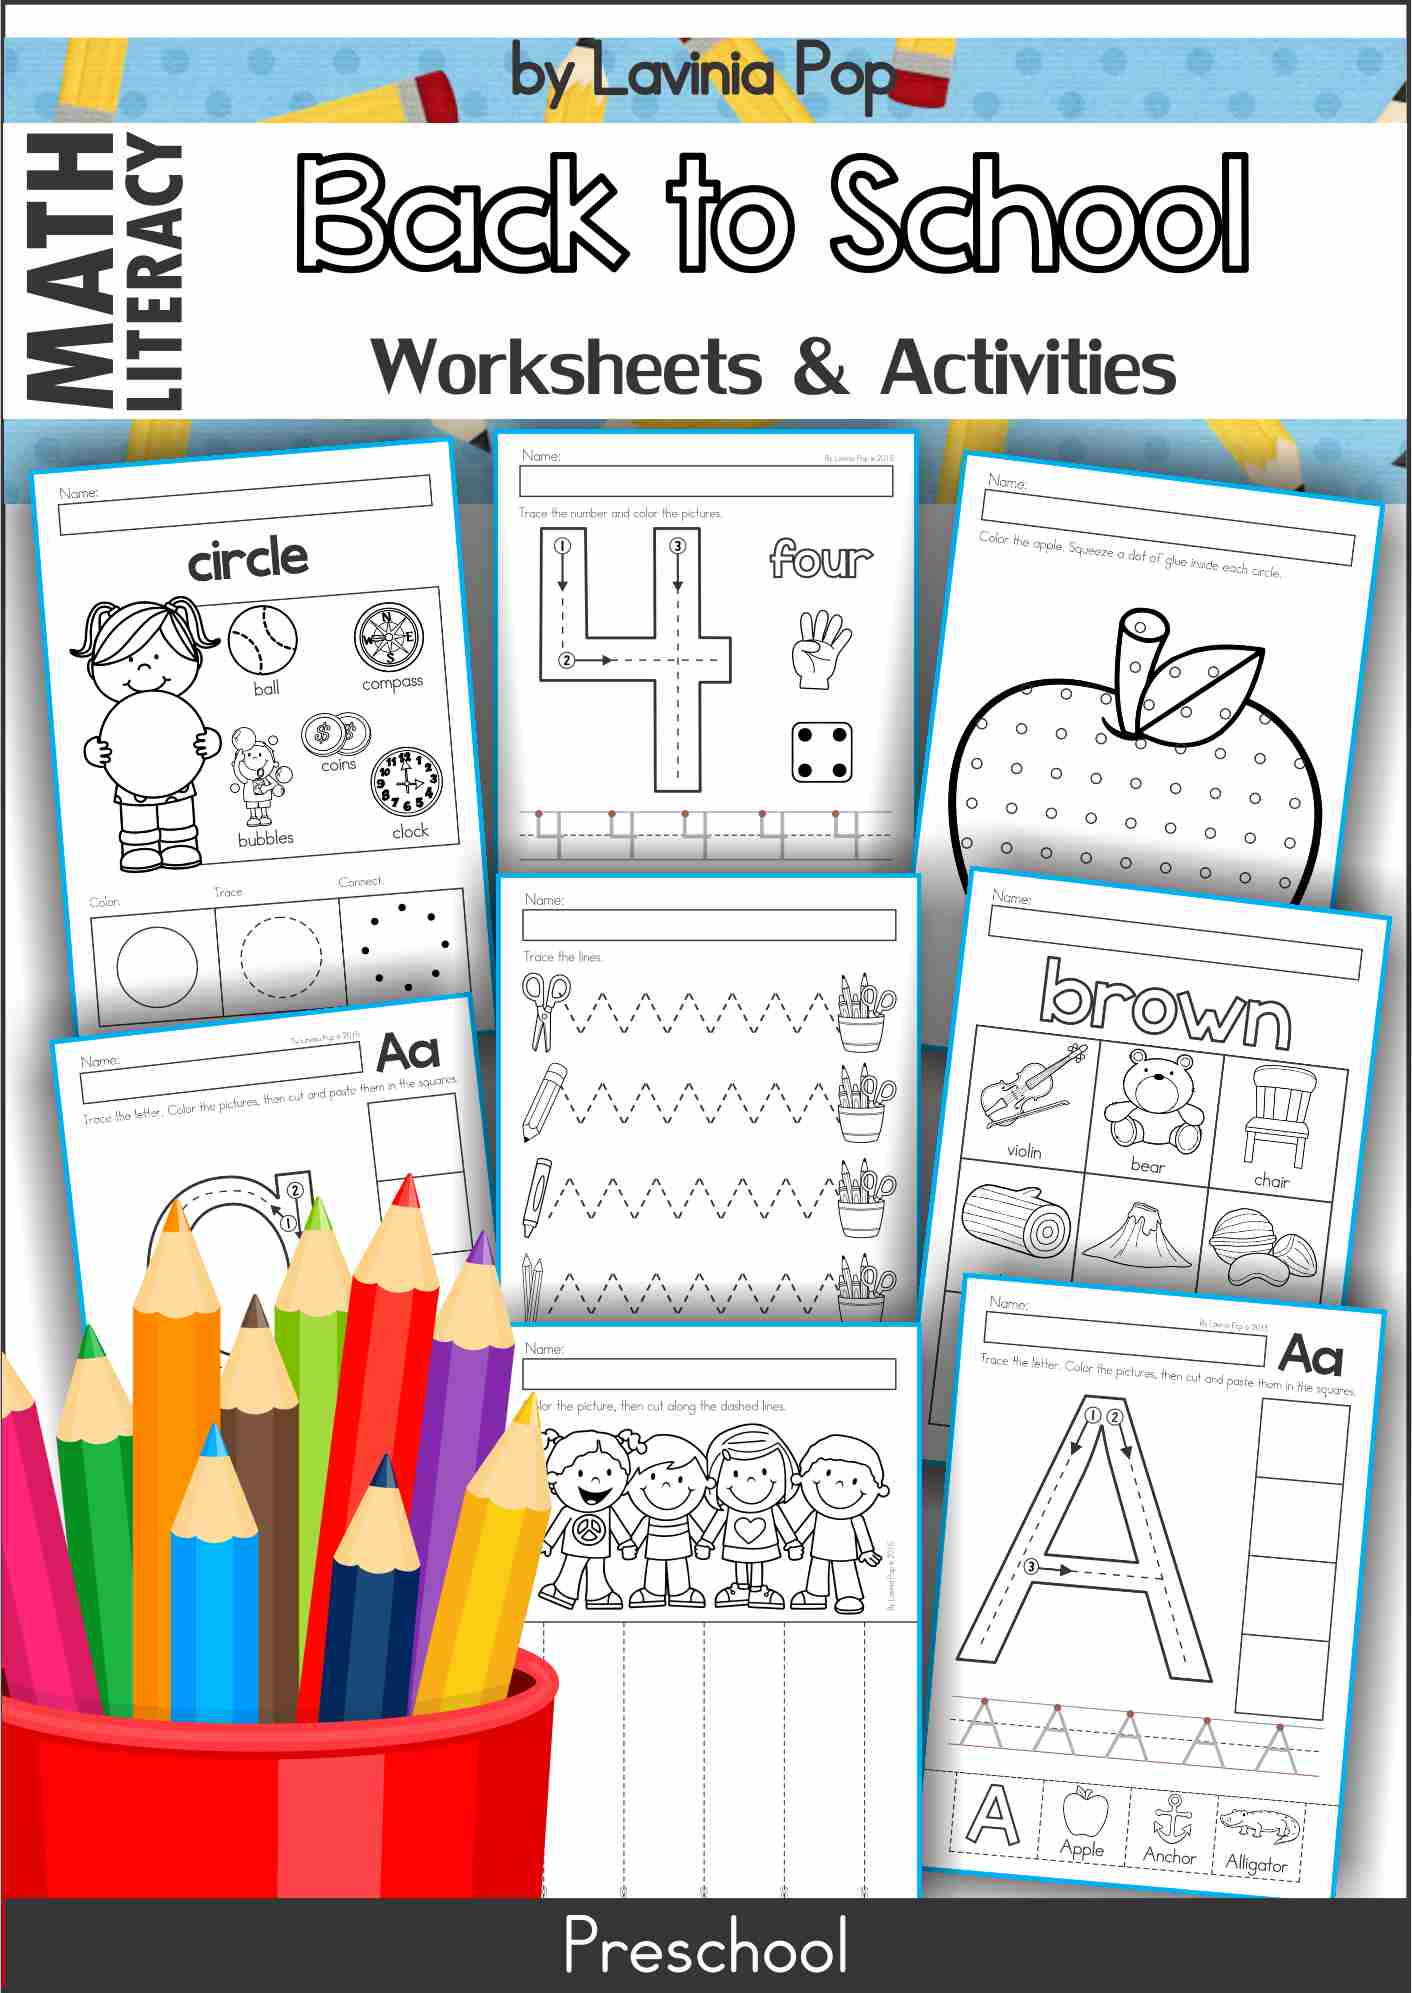 Preschool Worksheets And Activities